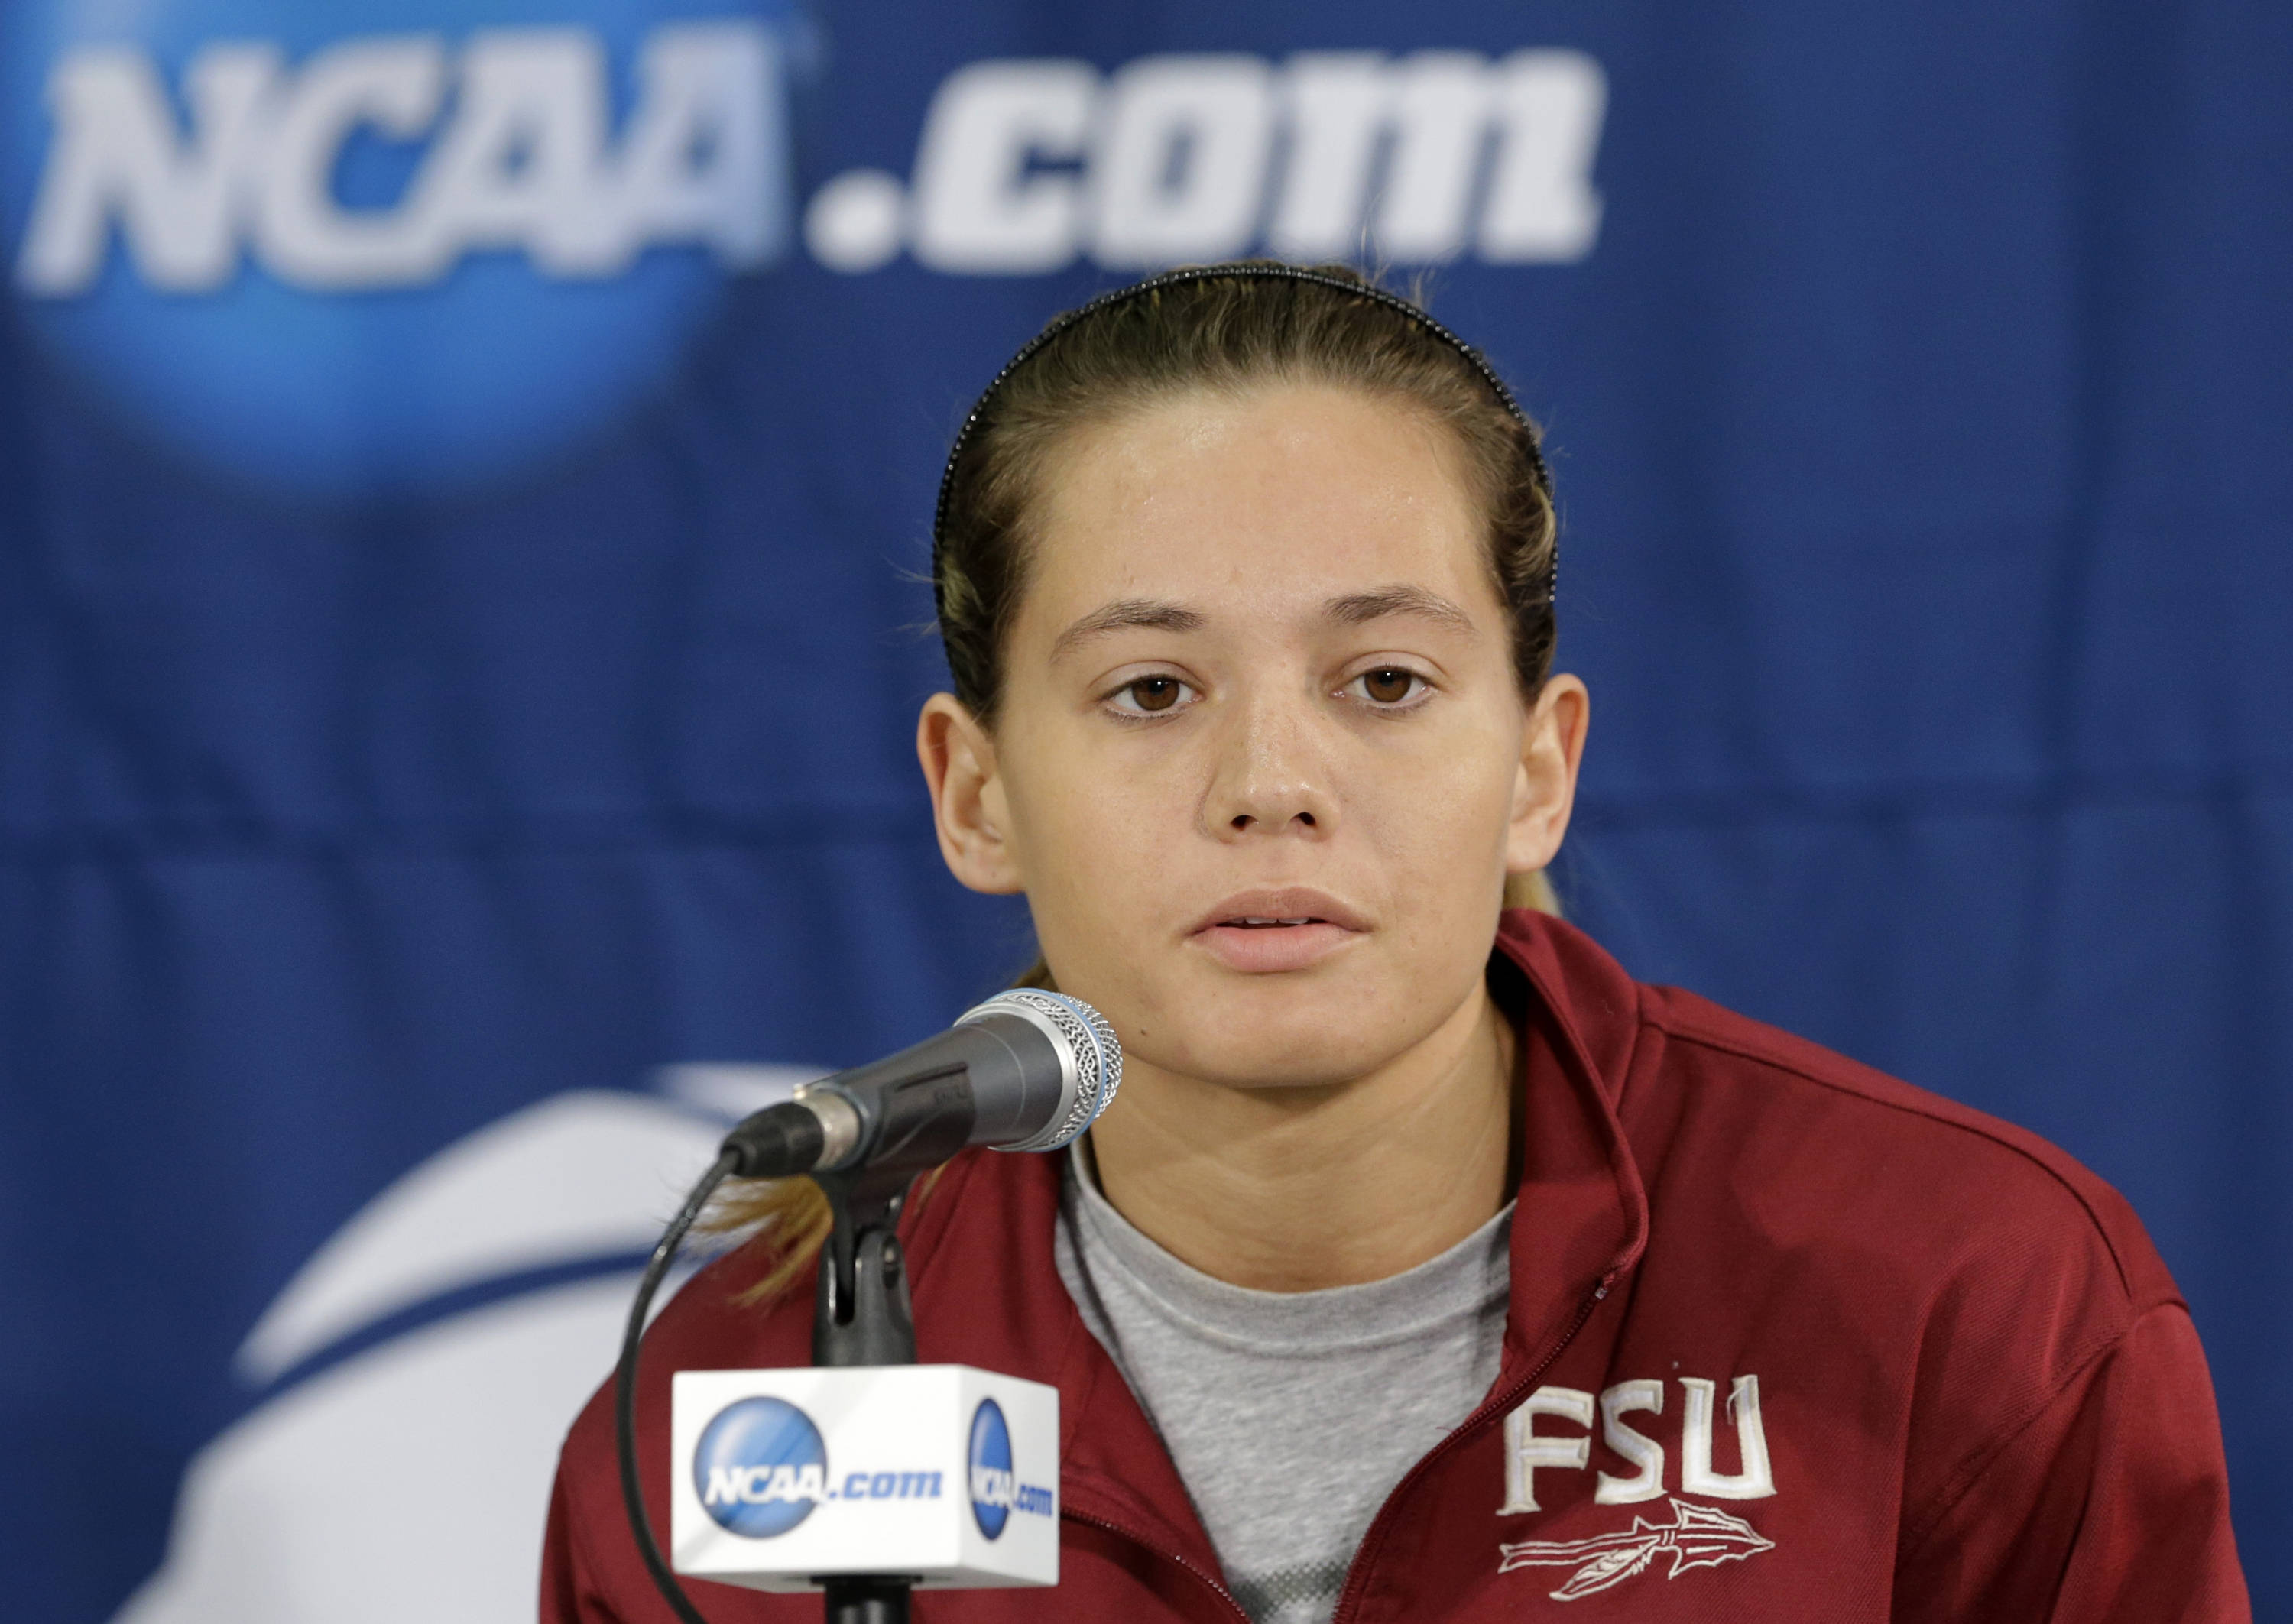 Florida State guard Alexa DeLuzio responds to a reporters question during a press conference at the women's NCAA college basketball tournament Monday, March 25, 2013, in Waco, Texas. FSU is scheduled to play Baylor on Tuesday. (AP Photo/Tony Gutierrez)